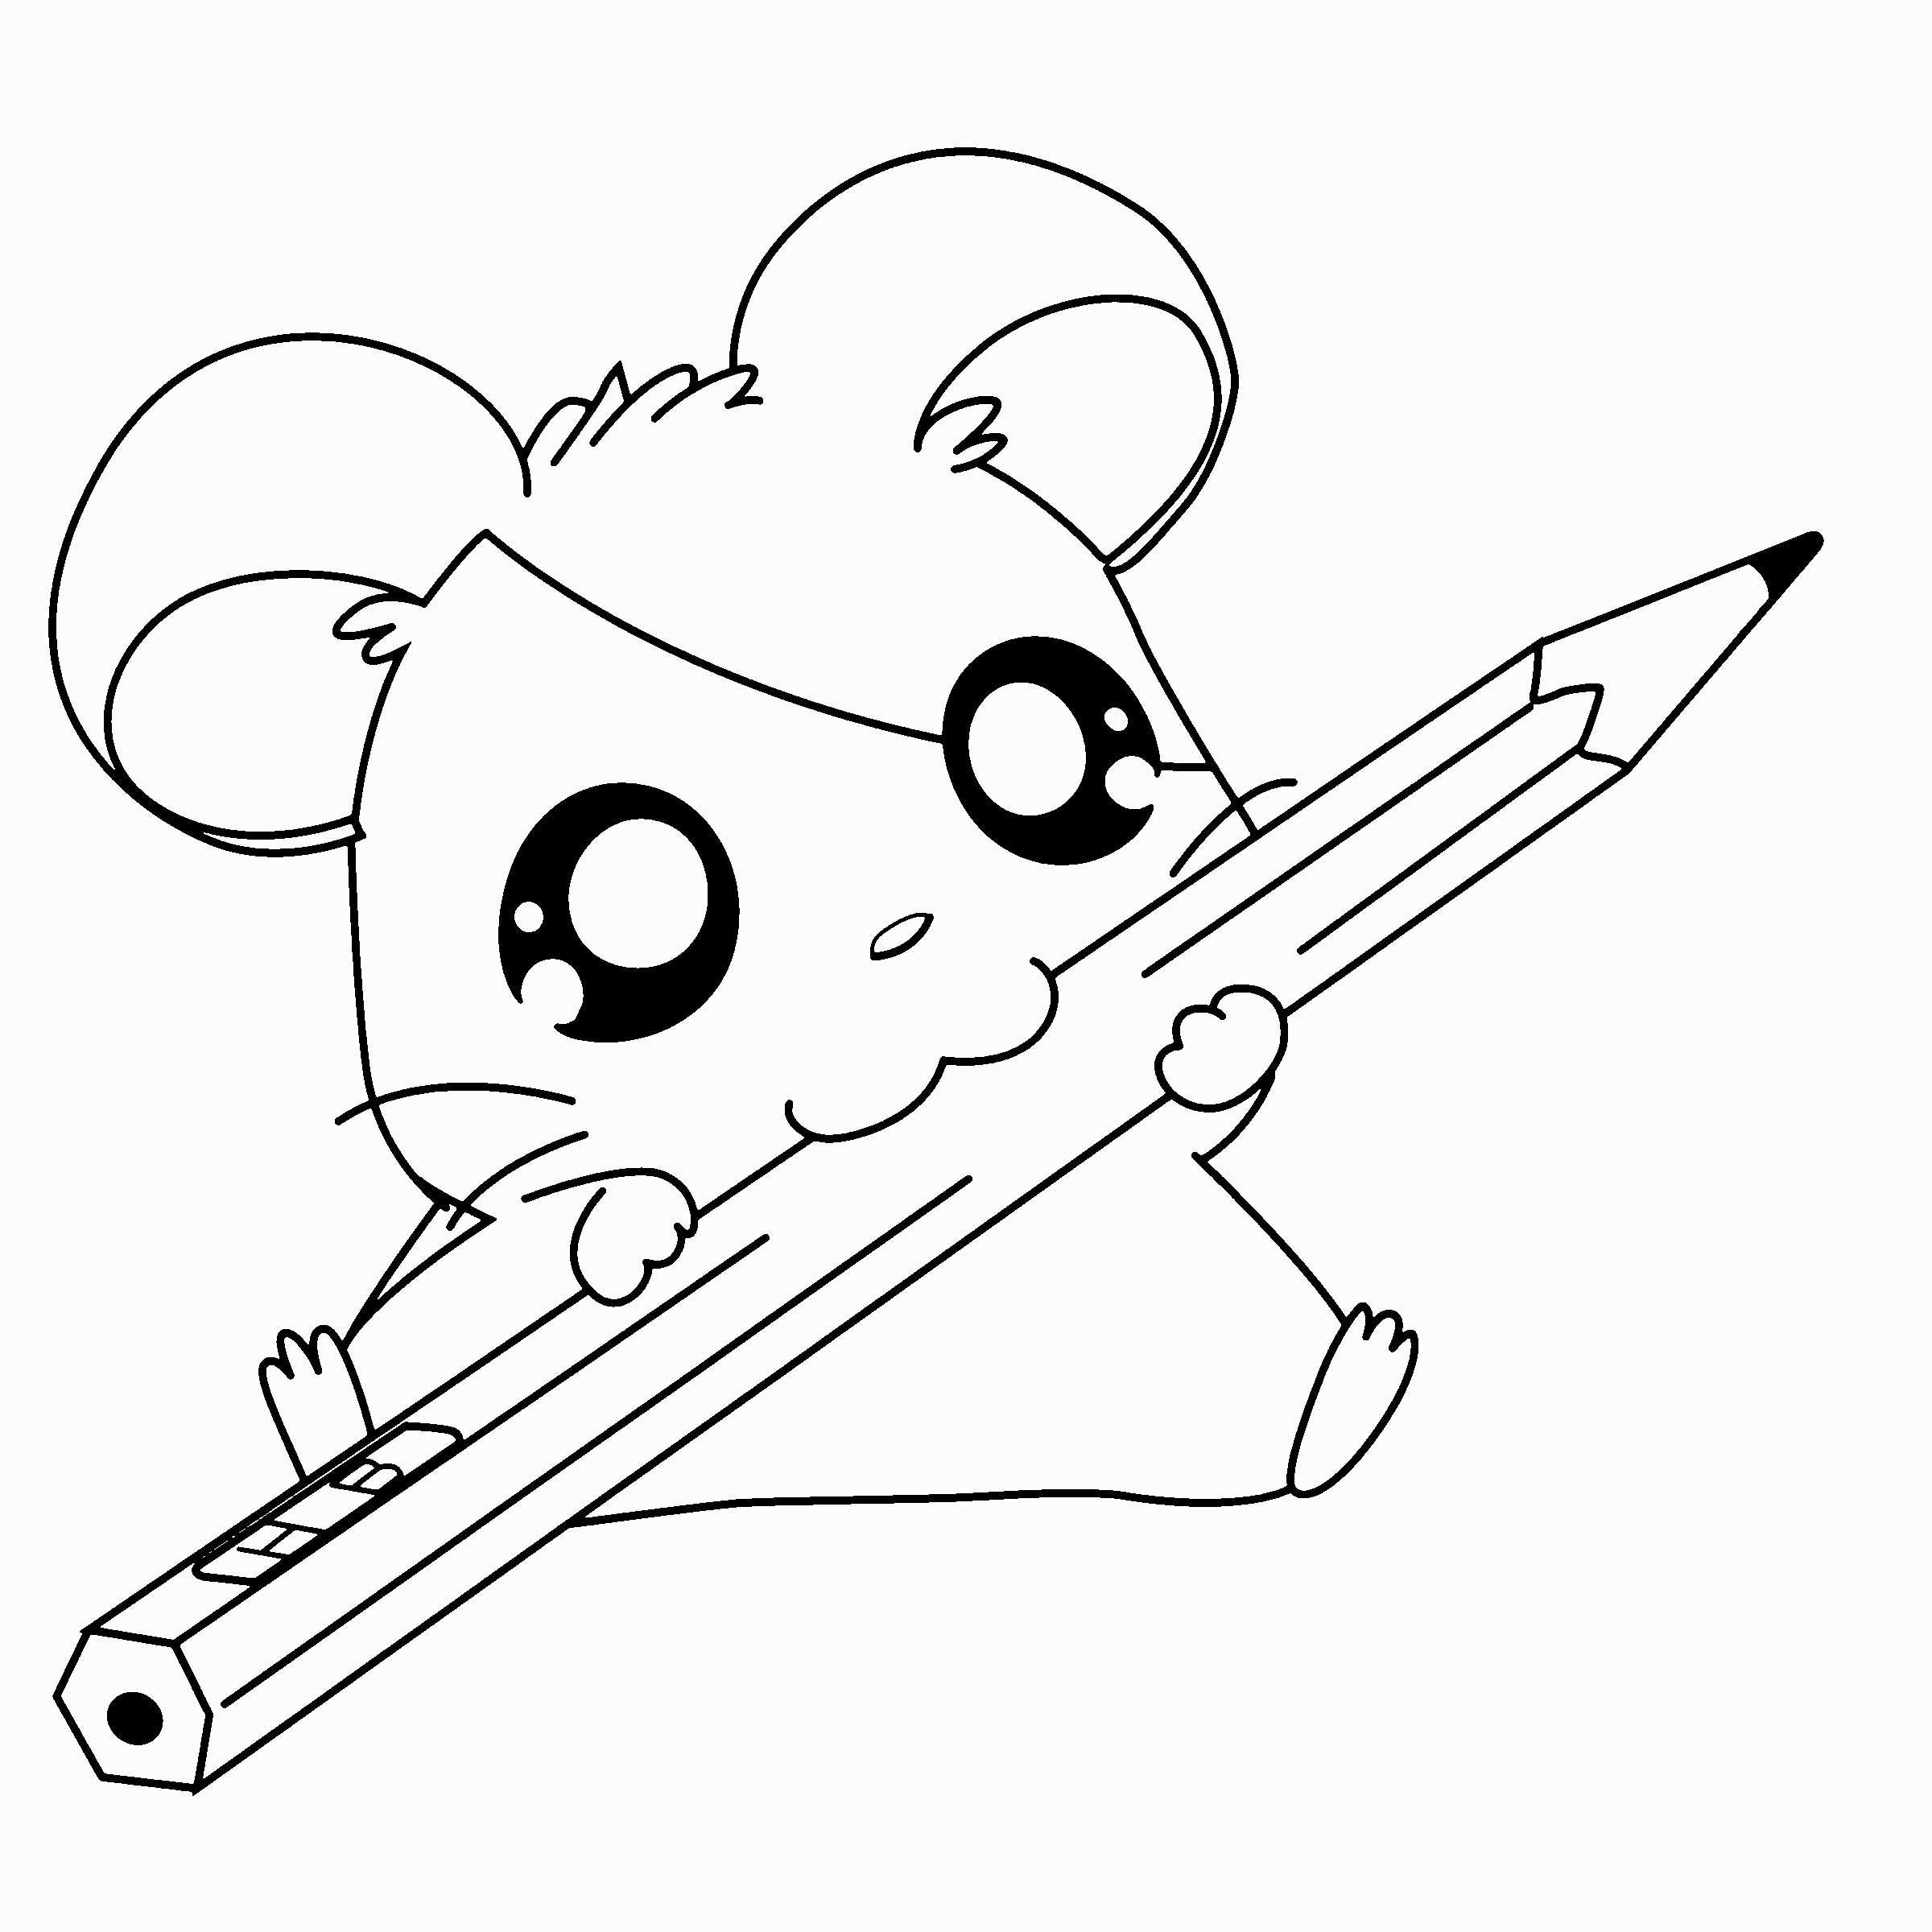 Adult Coloring Pages Monkey In 2020 Puppy Coloring Pages Animal